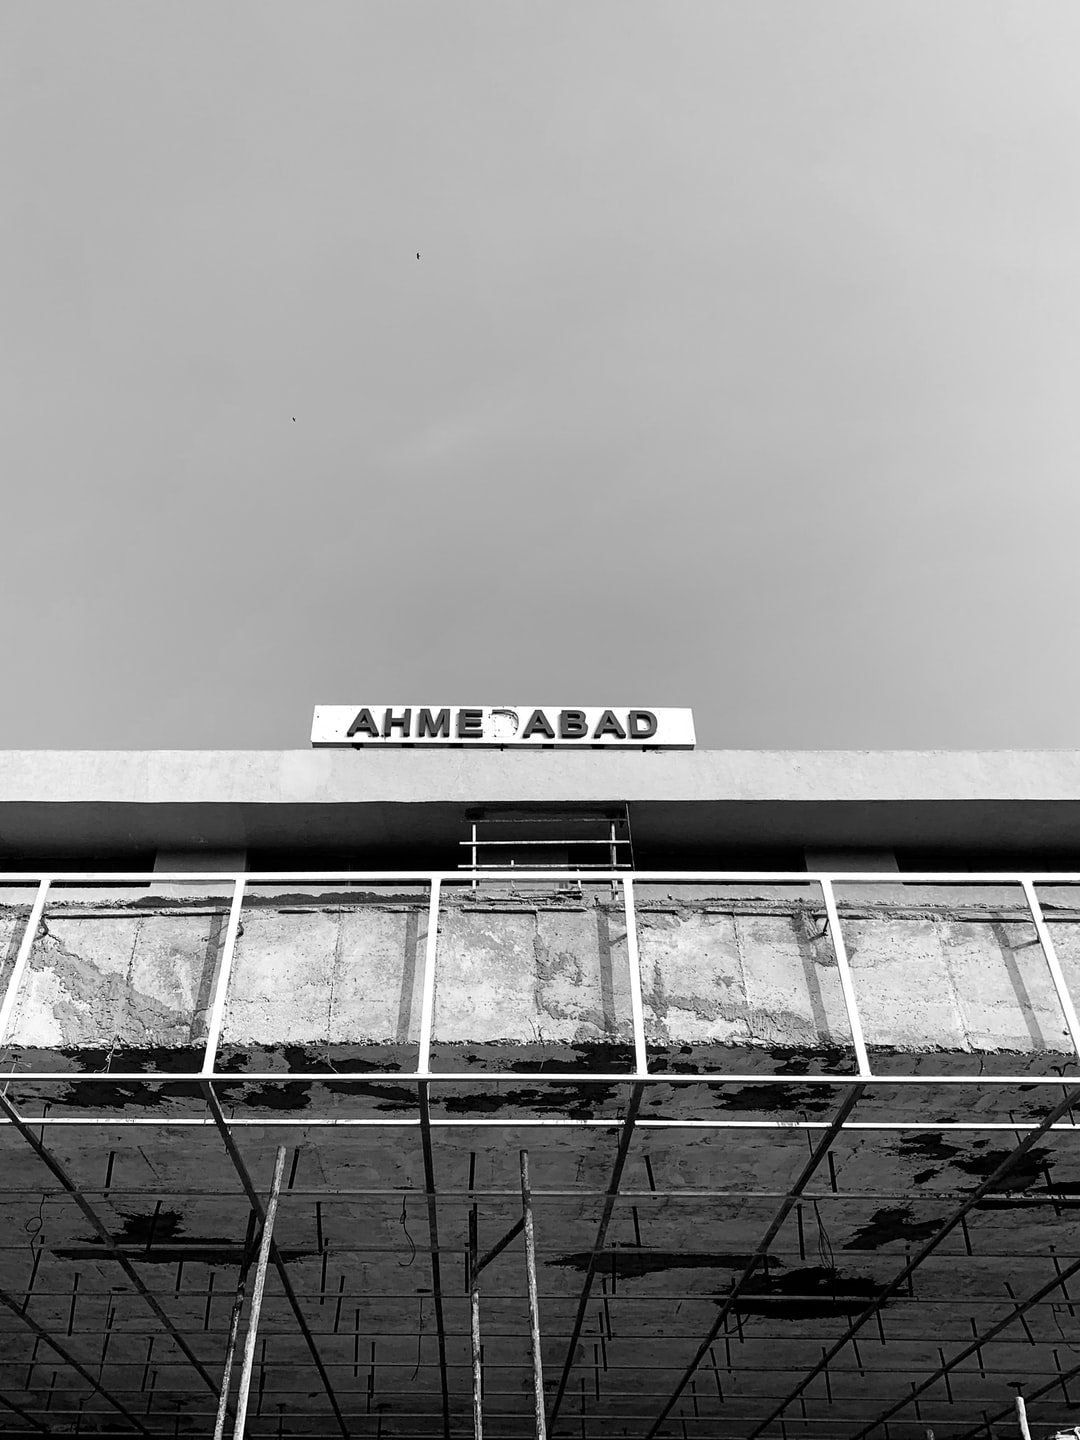 Ahmedabad Pictures Download Free Images On Unsplash